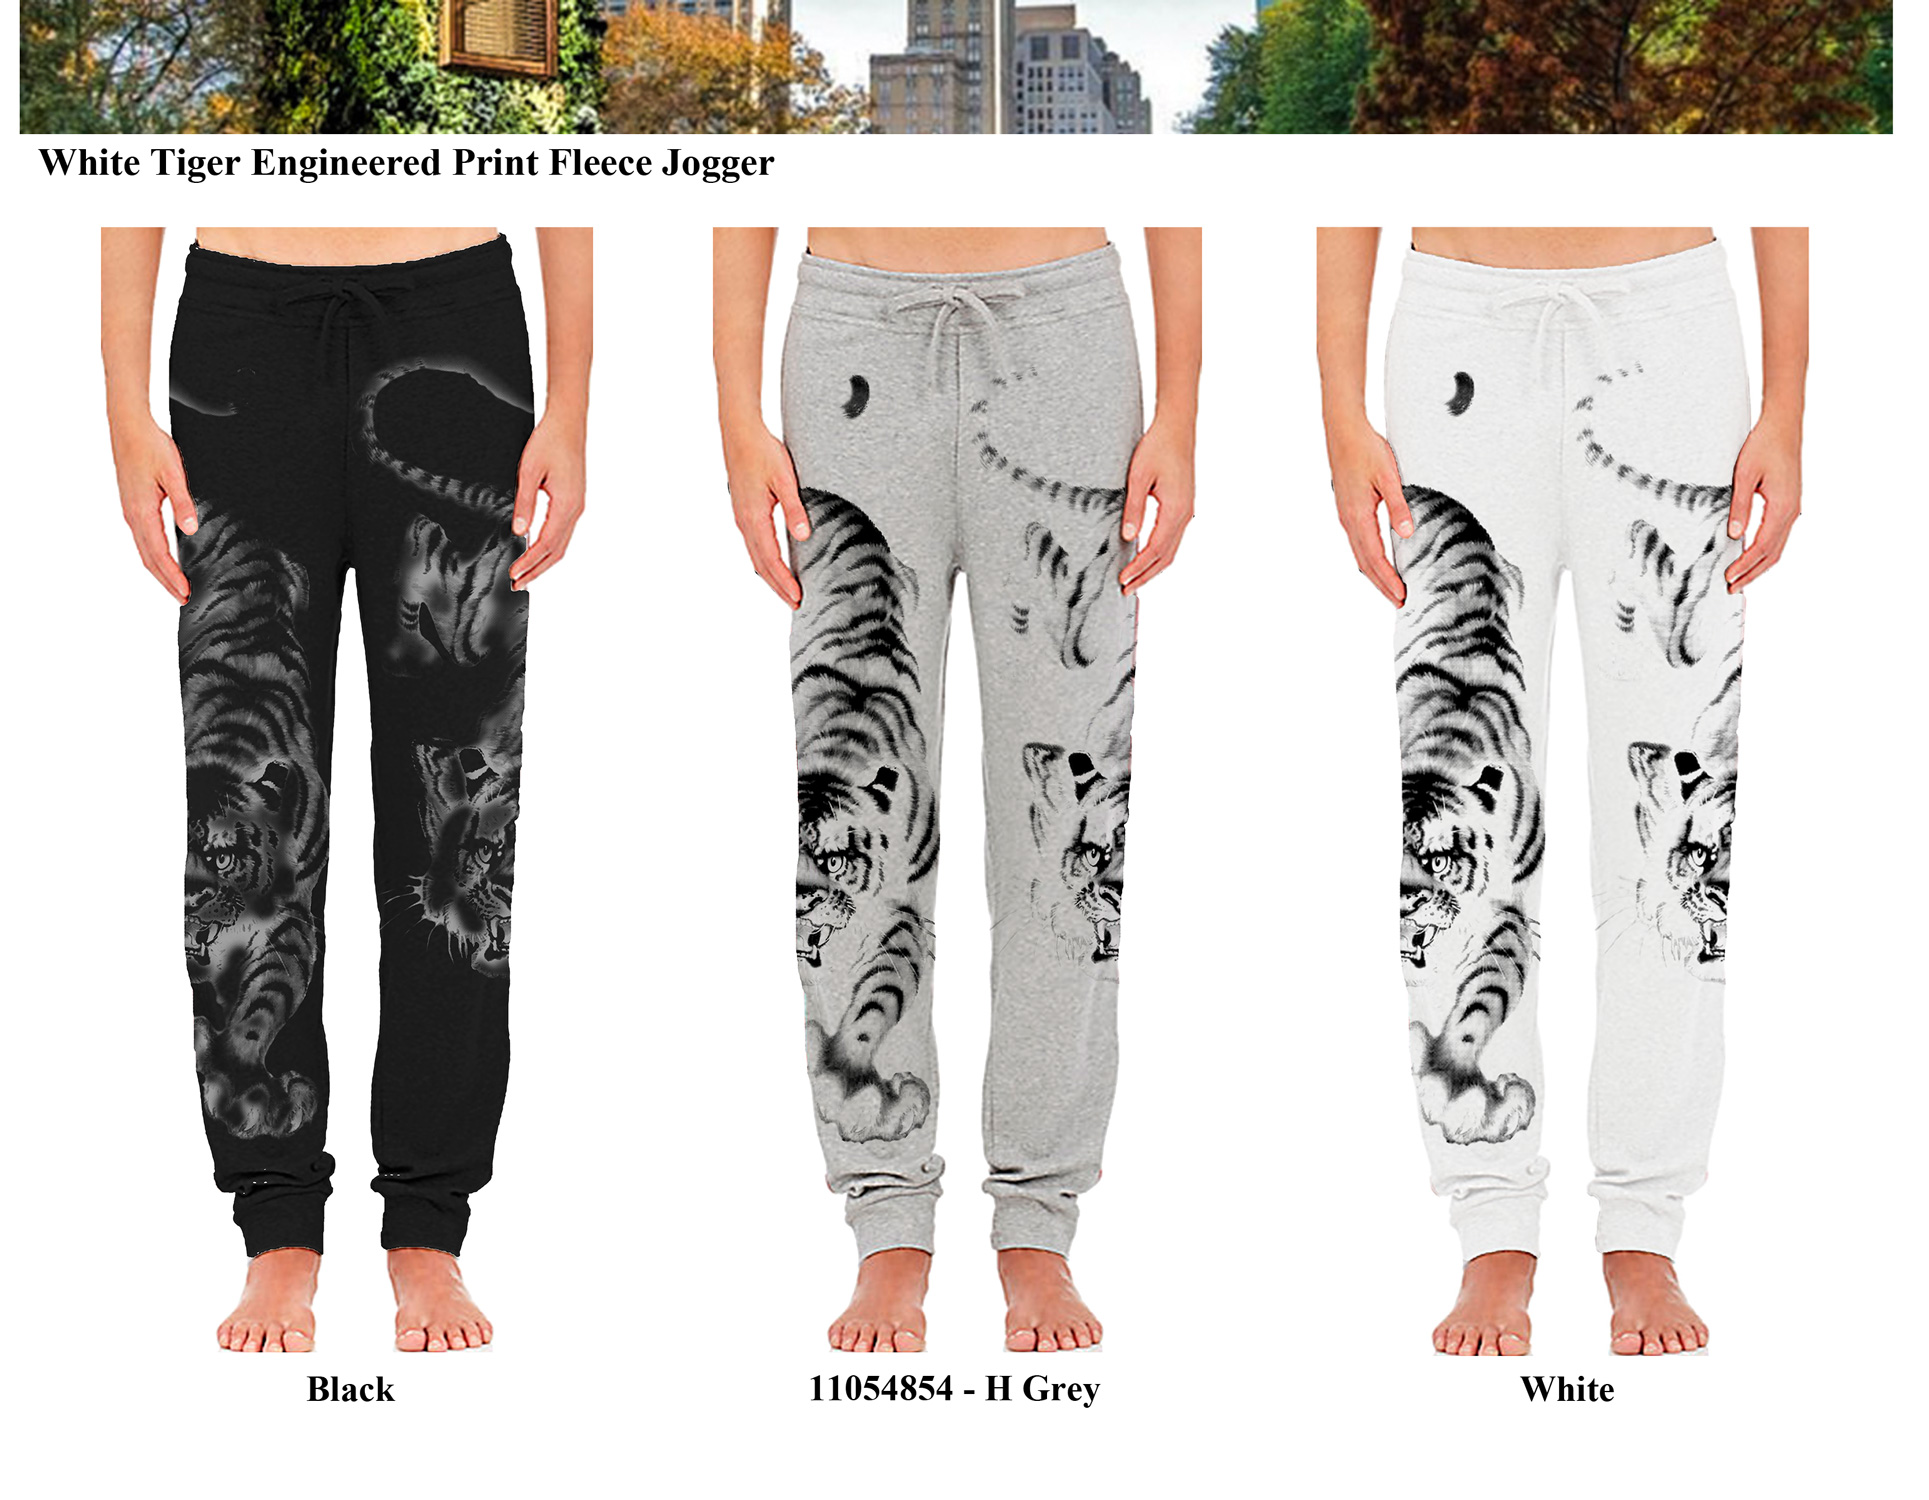 11054854-White-Tiger-Engineered-Print-Fleece-Jogger